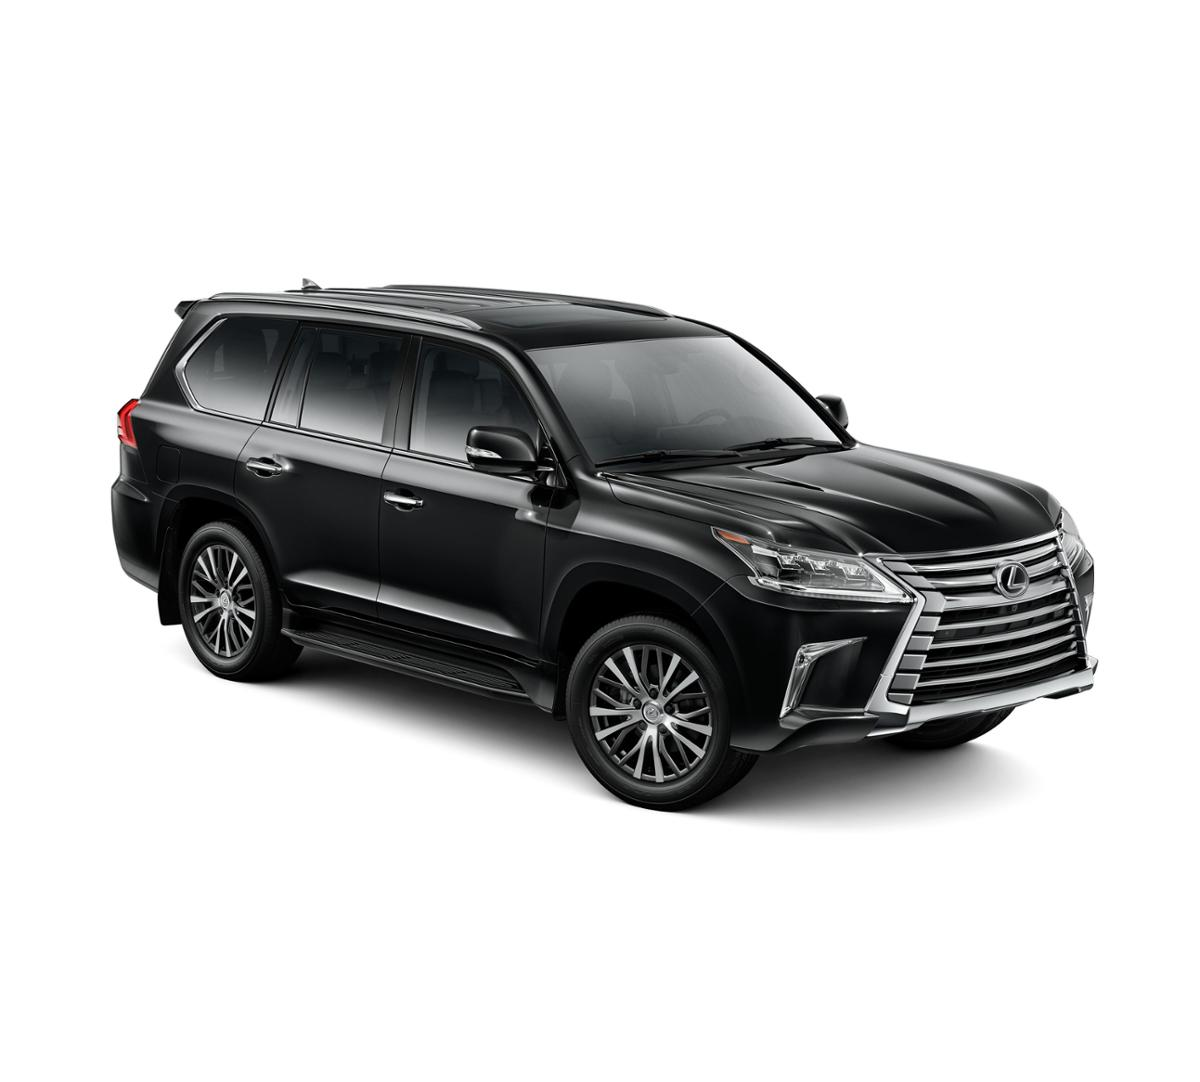 2017 Lexus LX 570 Vehicle Photo In Chattanooga, TN 37421